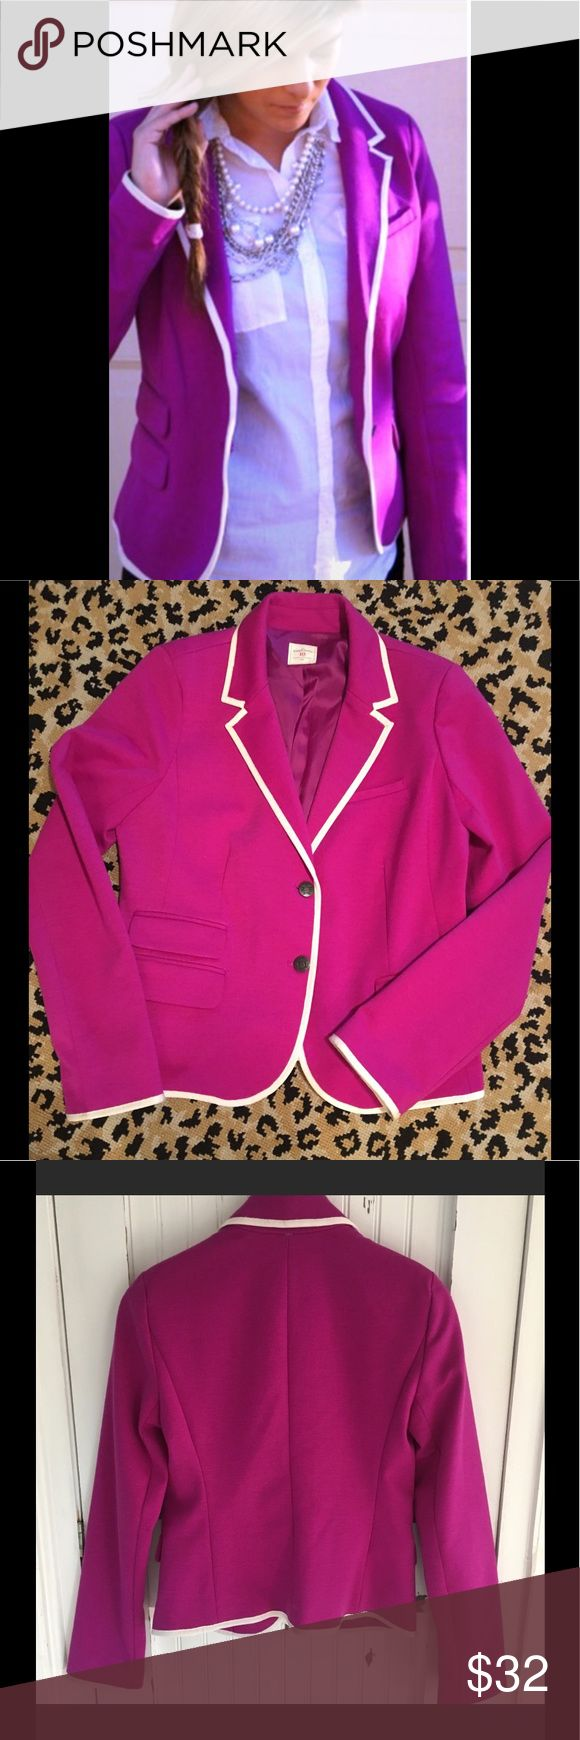 💟Beautiful Blazer The Academy Blazer. 💟A stunner with white wool or cotton pants or Black pants for dress⚛️ Trimmed with grosgrain ribbon. More detail listed above with photos. GAP Jackets & Coats Blazers